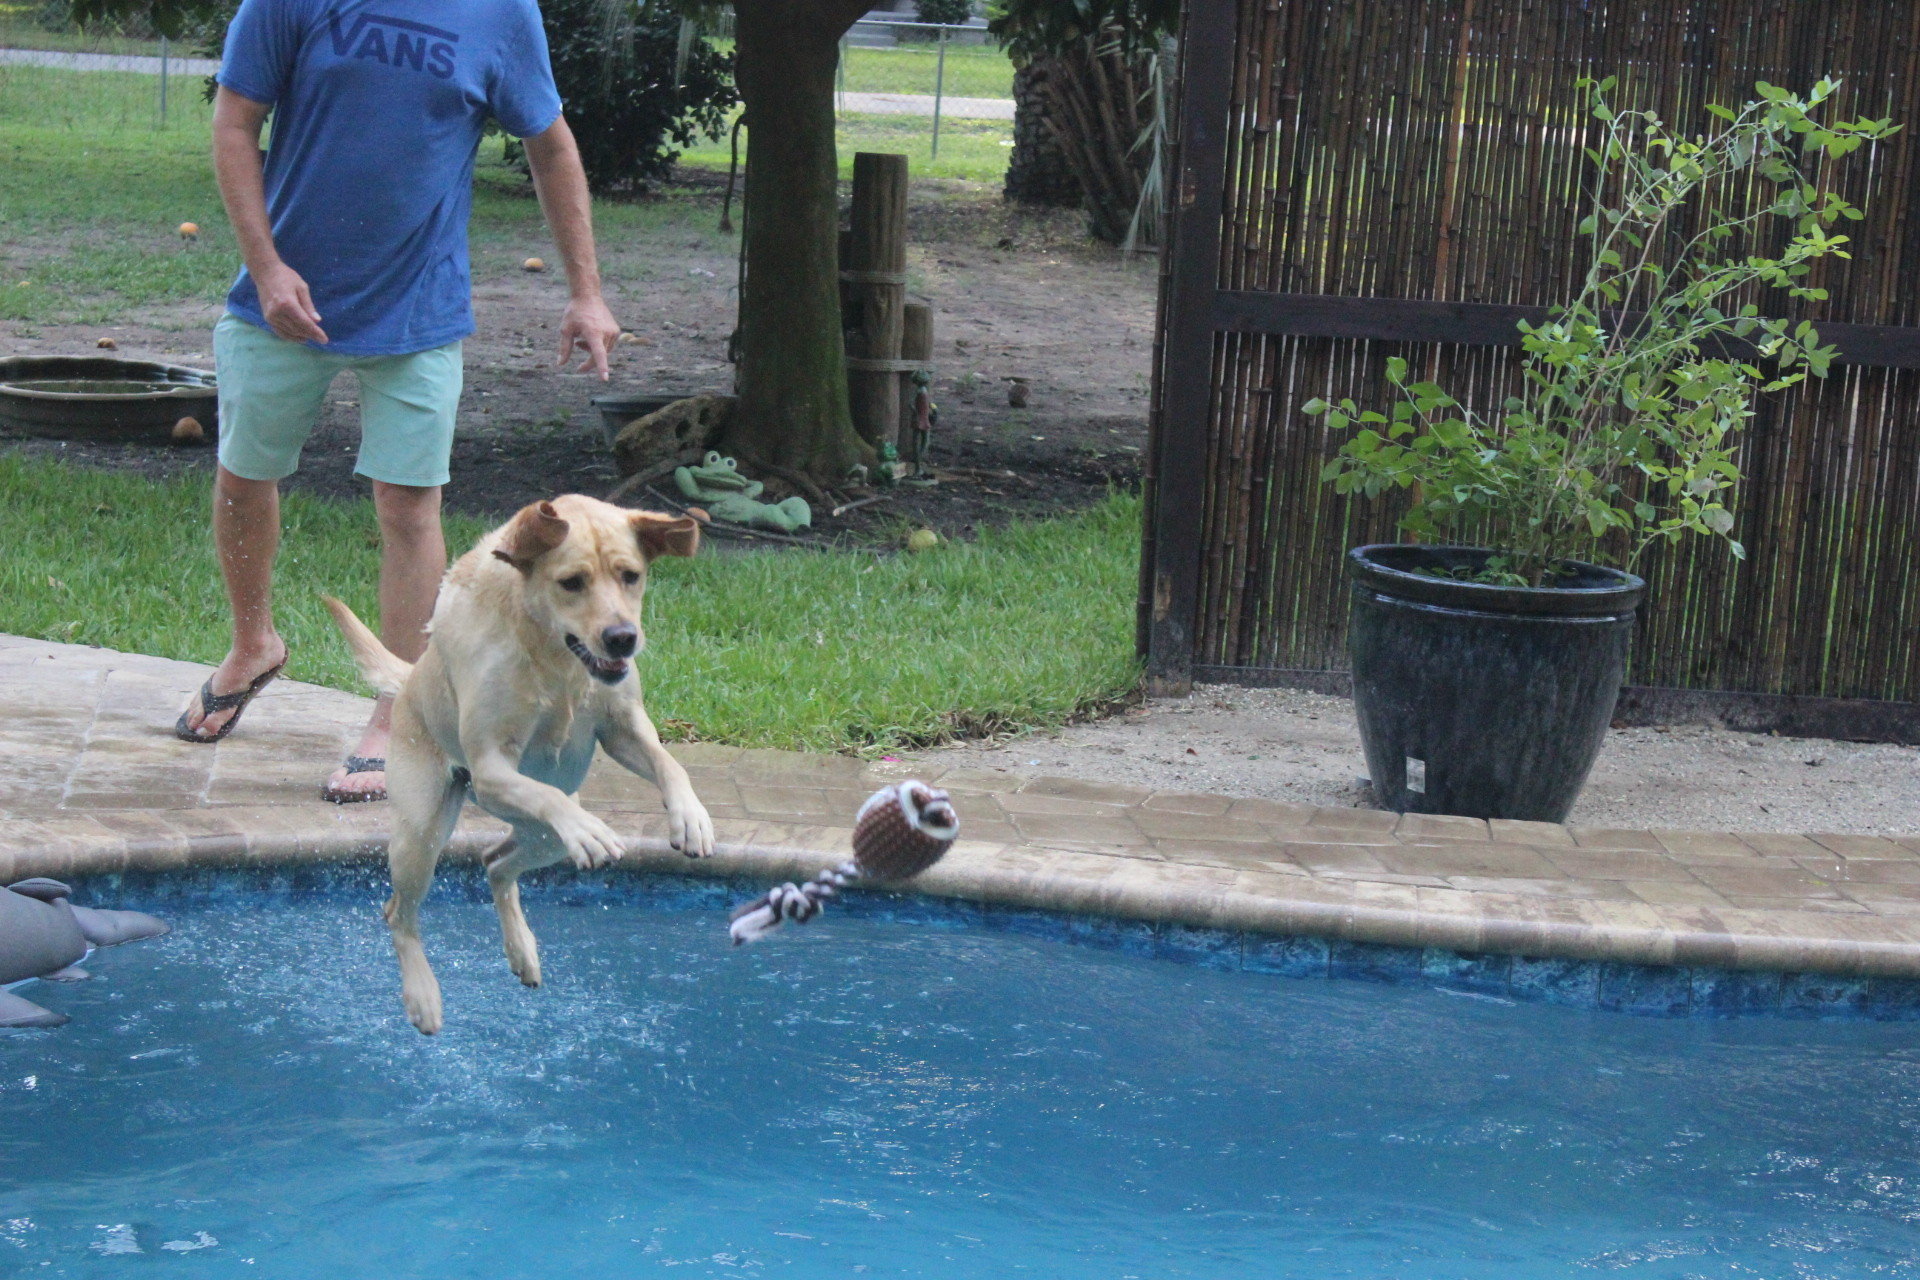 Cleo, a therapy dog, leaps after a toy thrown into Denise and Mark Umphress' pool.